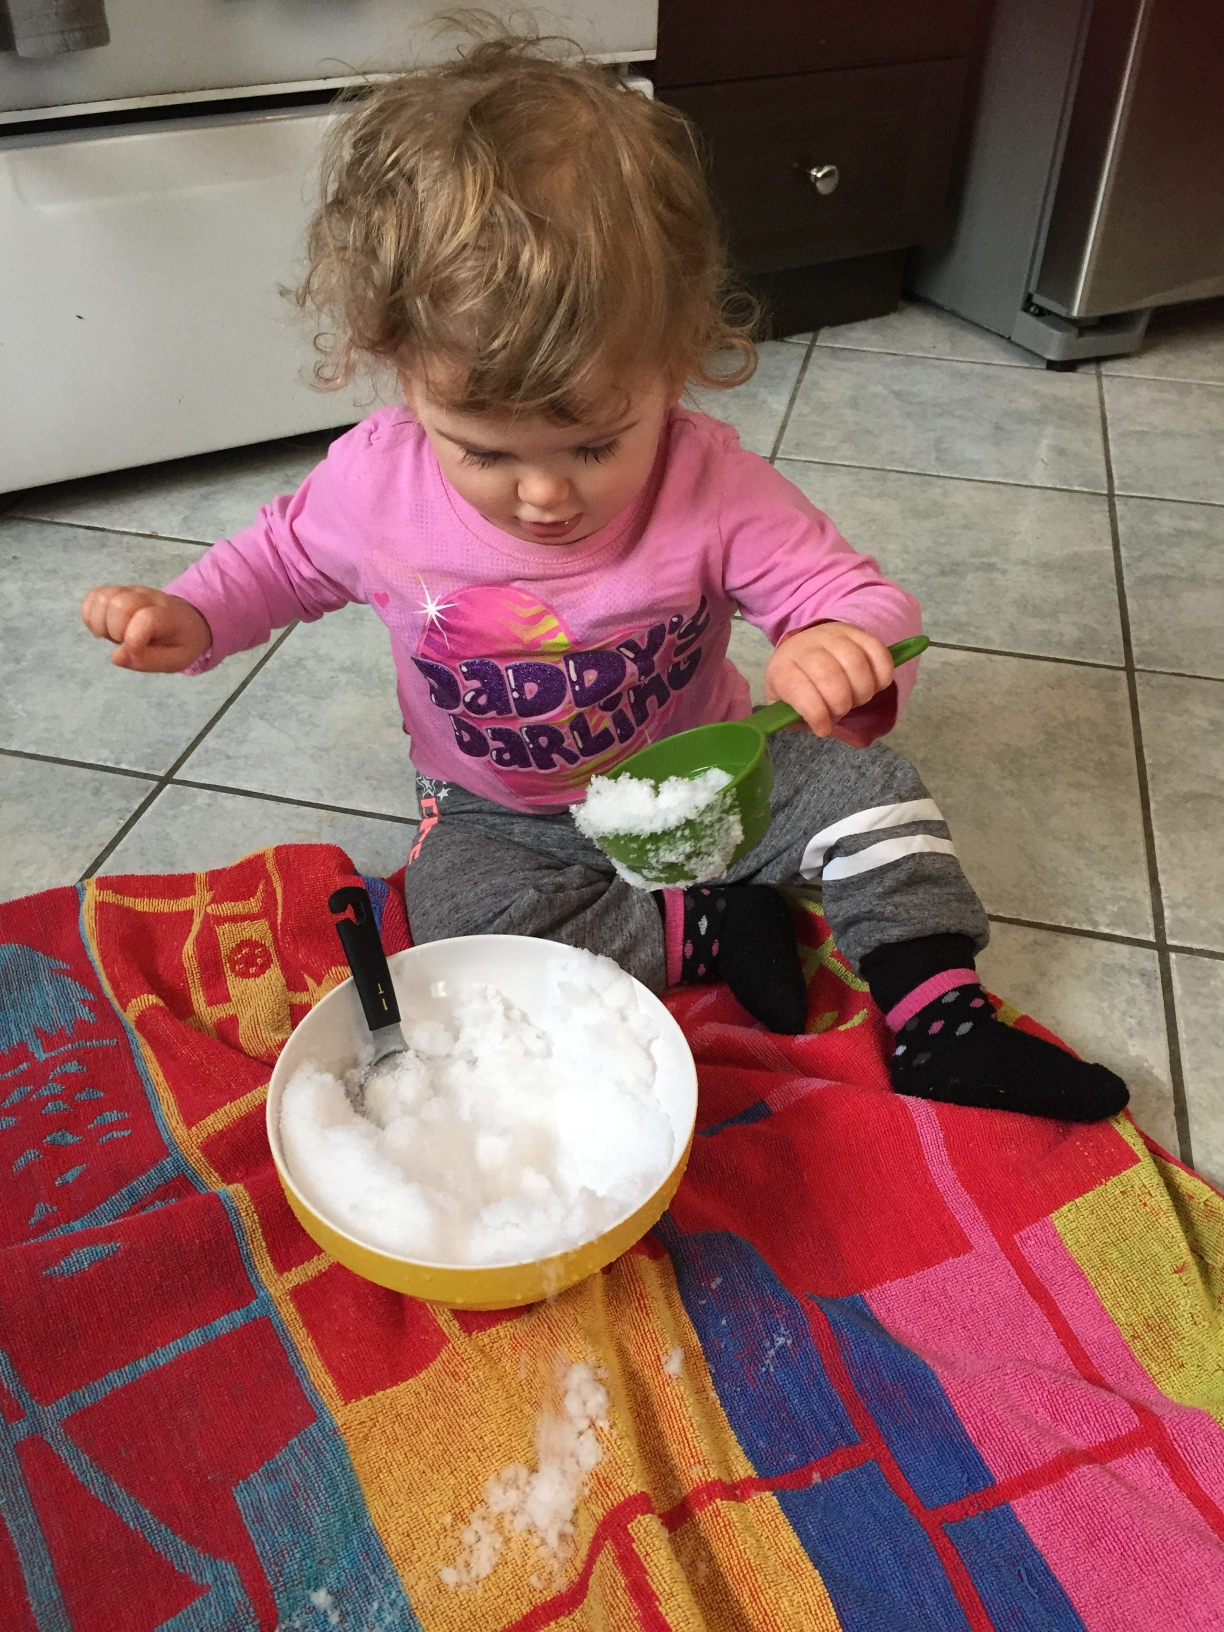 Toddler in pink shirt, grey pants scooping snow from a bowl with a measuring cup